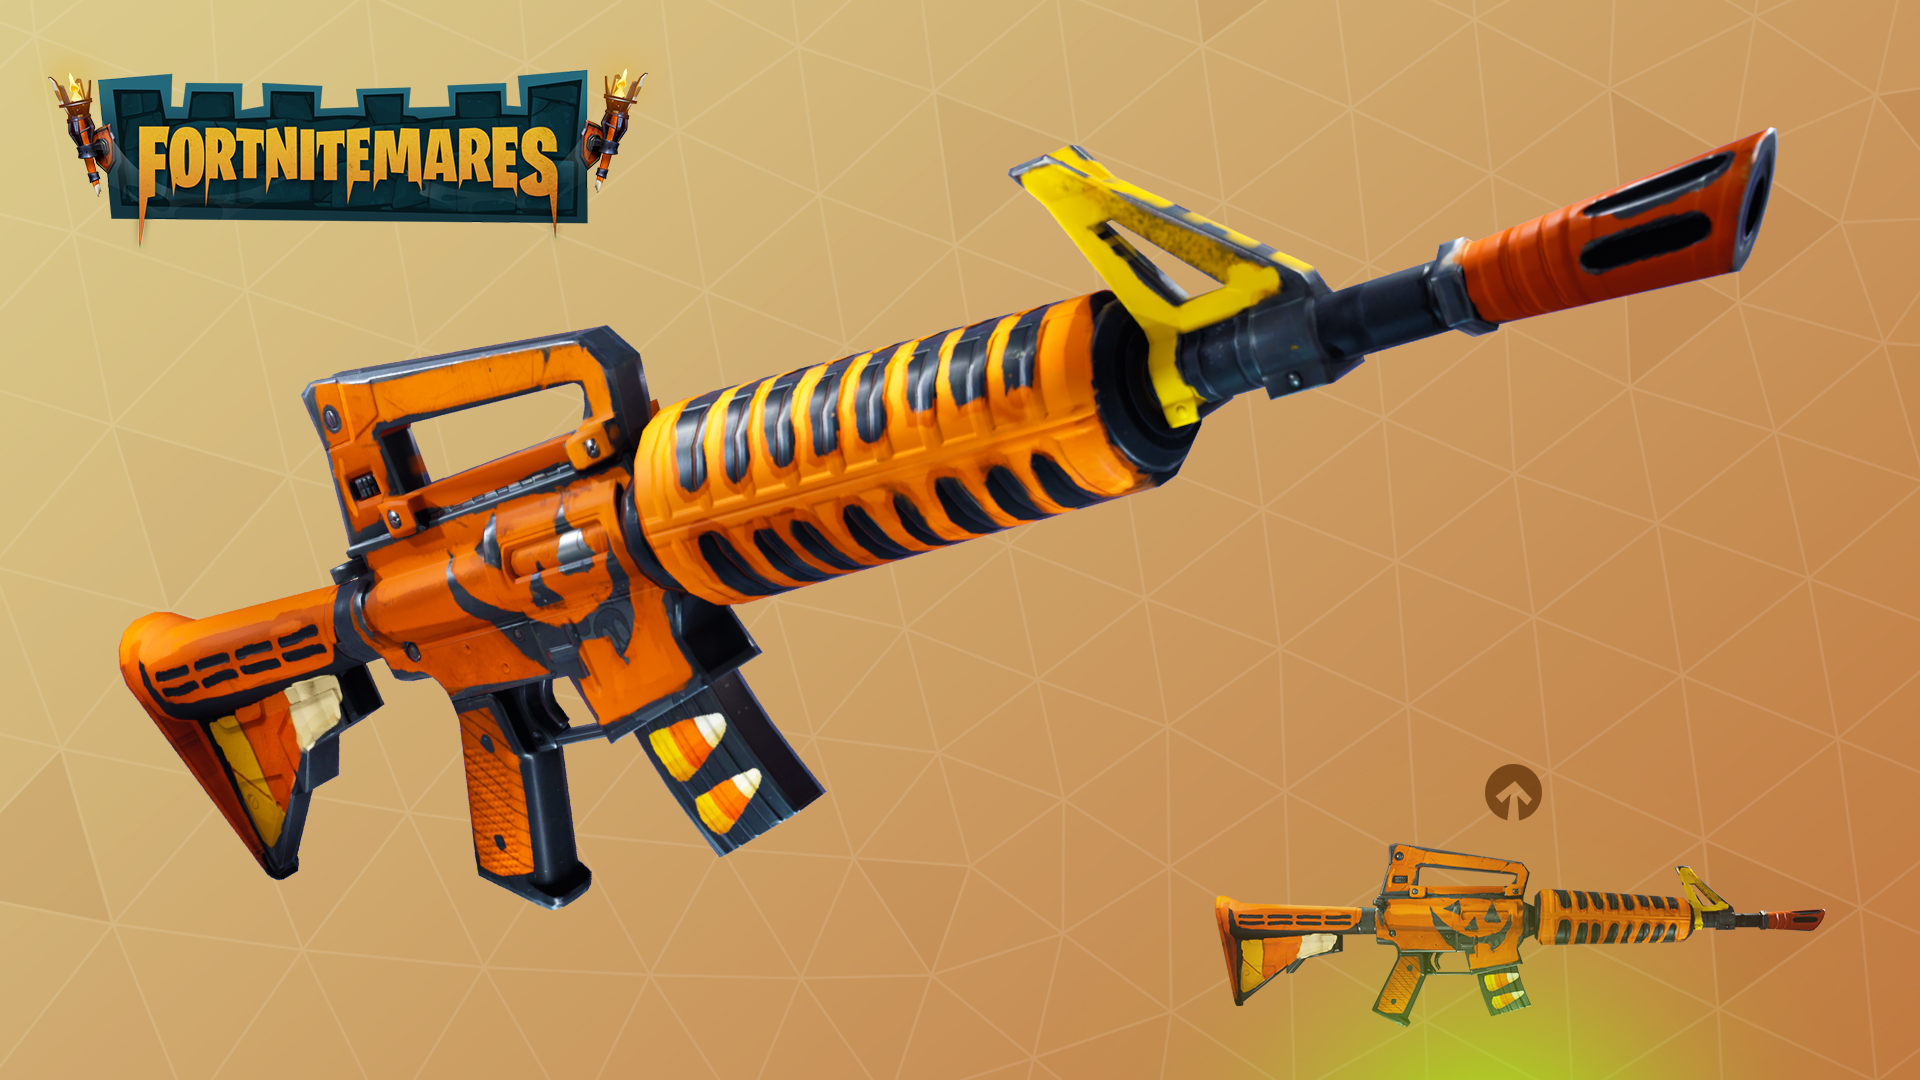 Fortnite%2Fblog%2Ffortnitemares-update-1-8-patch-notes%2FPVE_Rifle_EN-1920x1080-8f21dfe0390e78cf7ad3214540f2c9901f71cb73